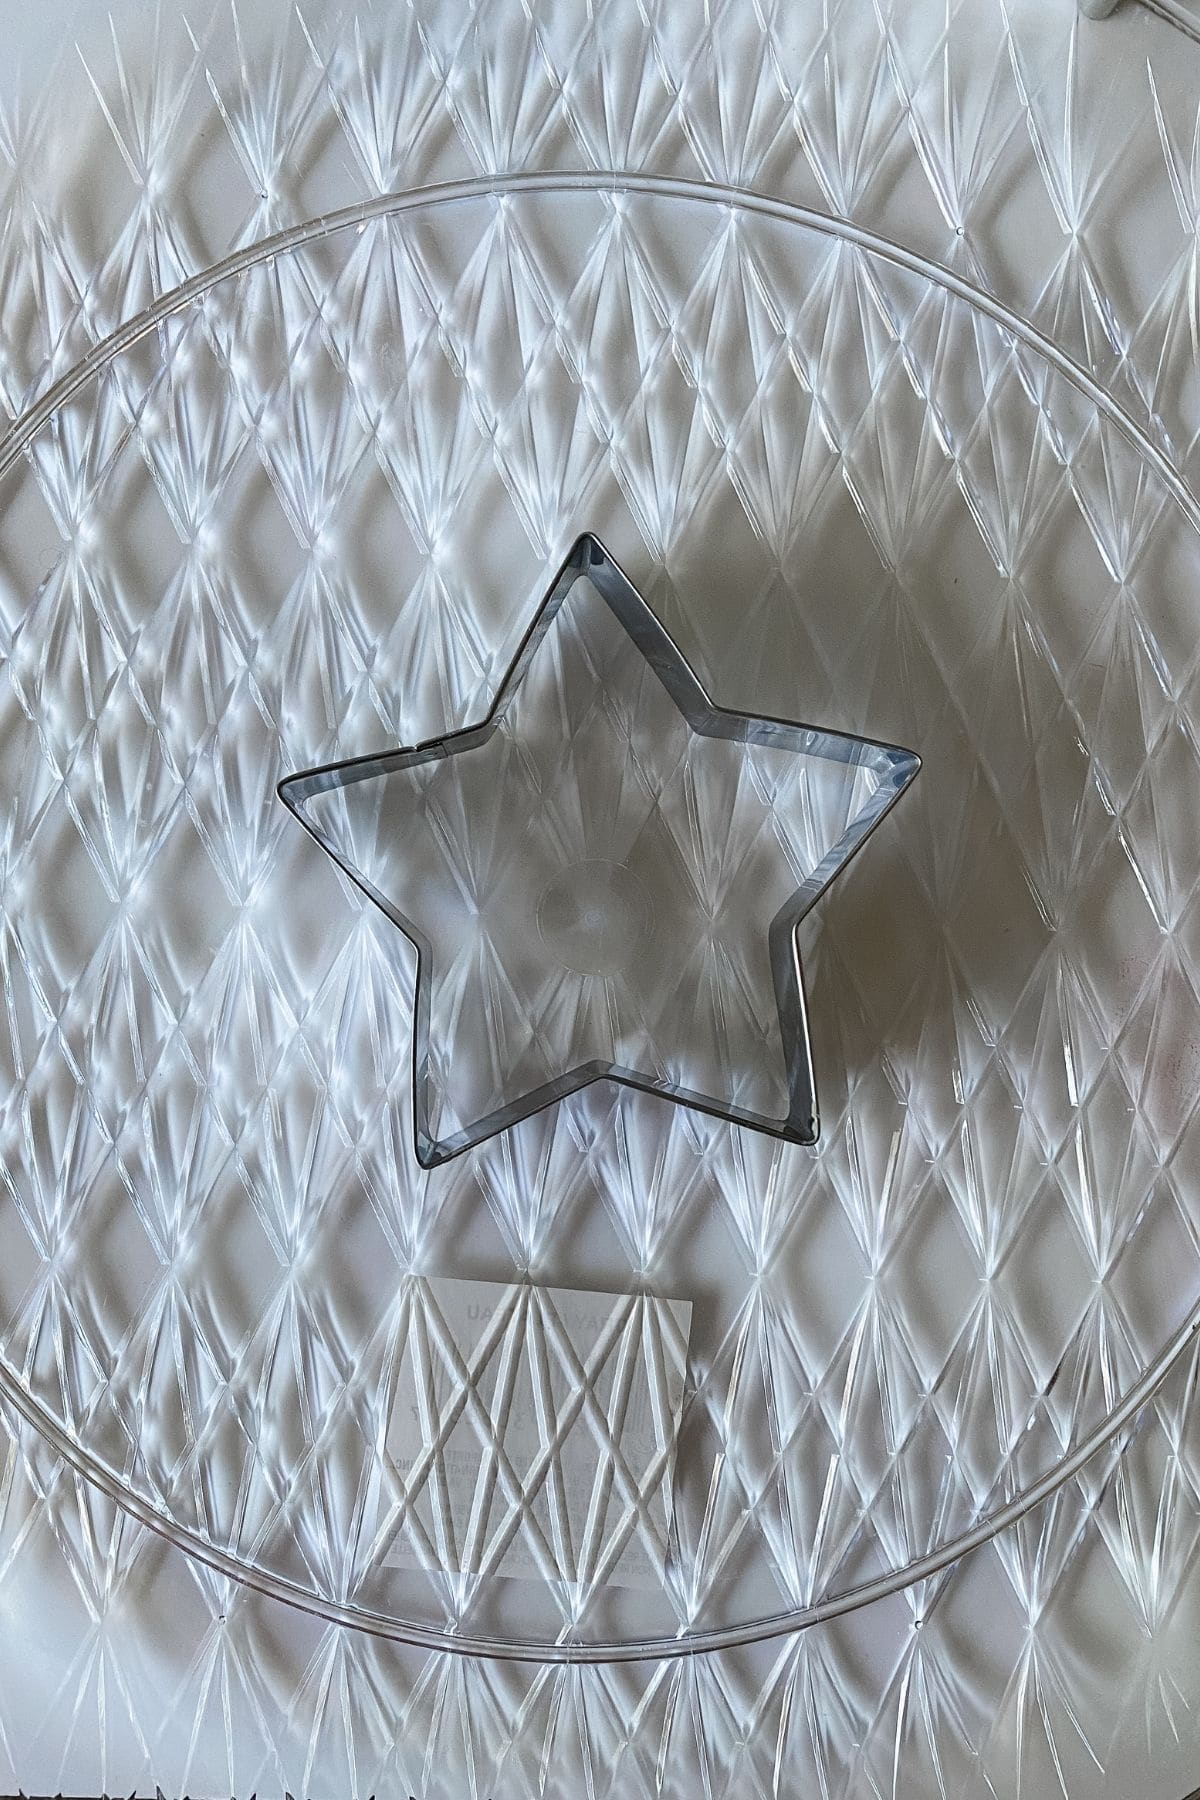 Large star cookie cutter in center of round platter